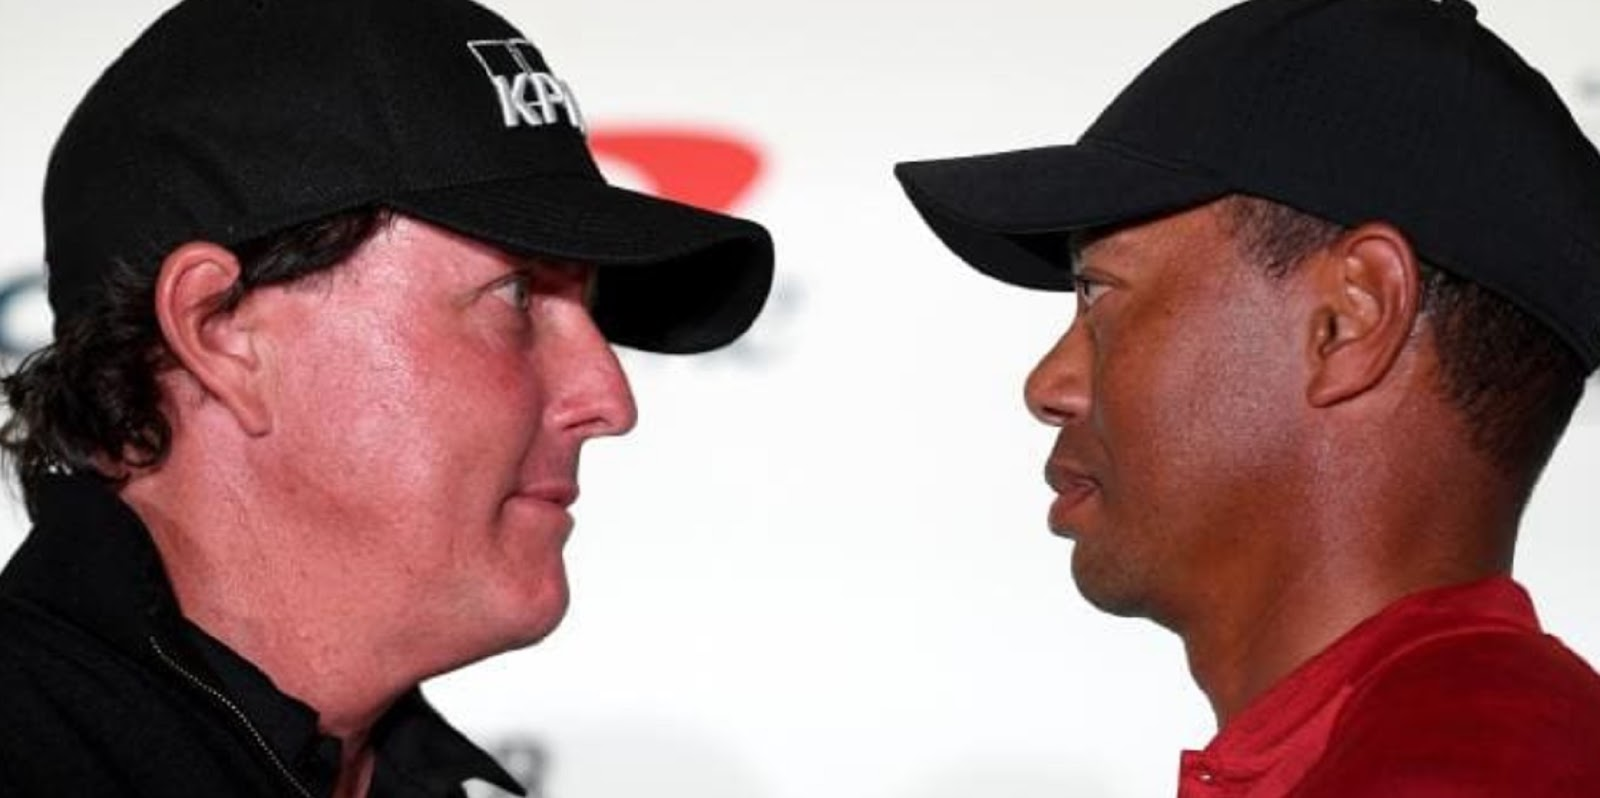 TIGER WOODS, PHIL MICKELSON 3